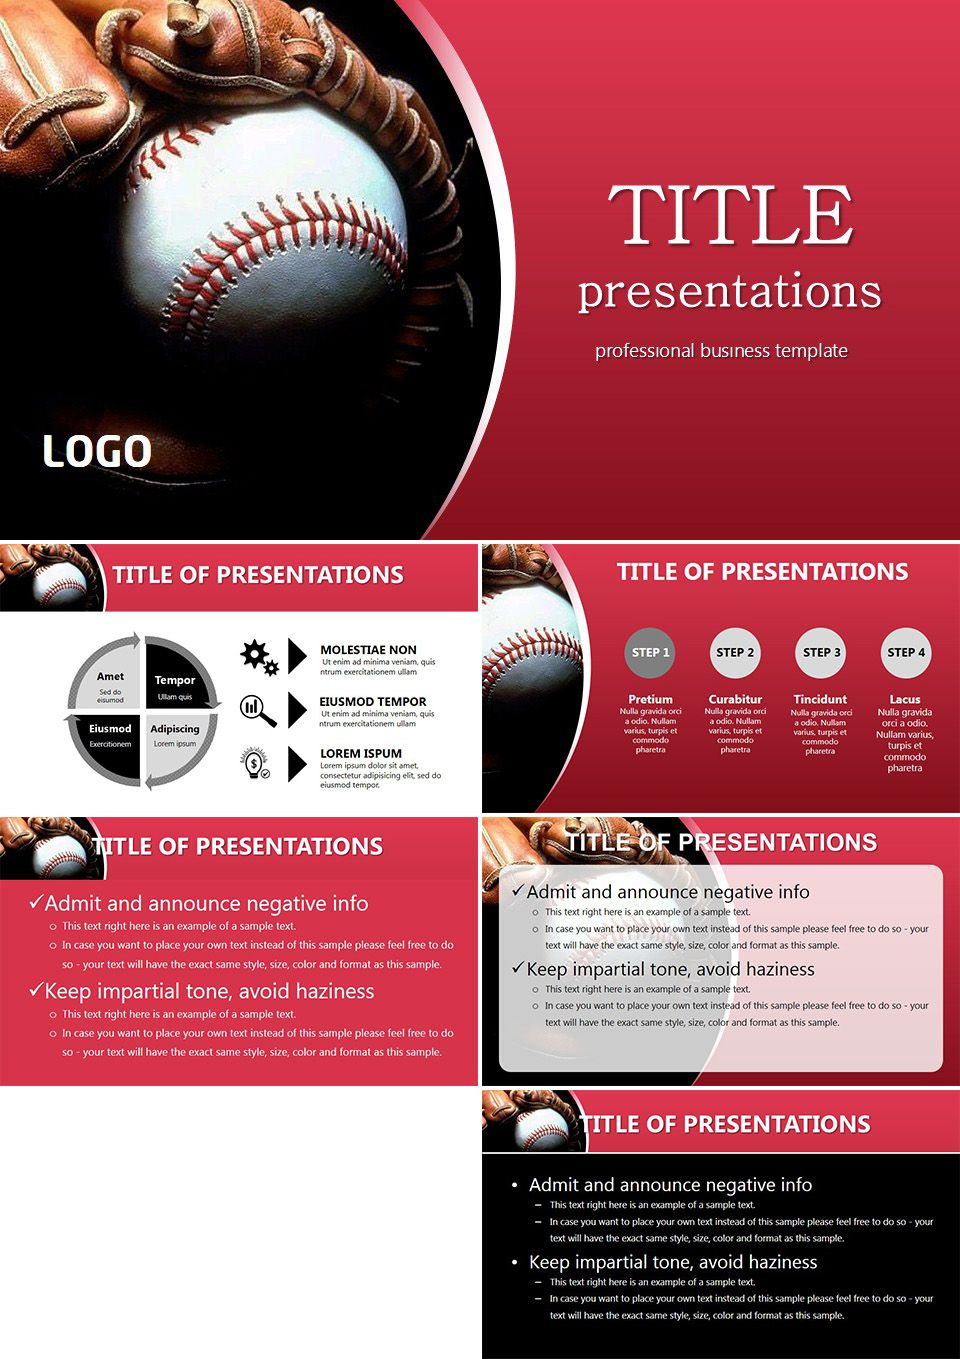 style baseball powerpoint templates | baseball | pinterest, Powerpoint templates